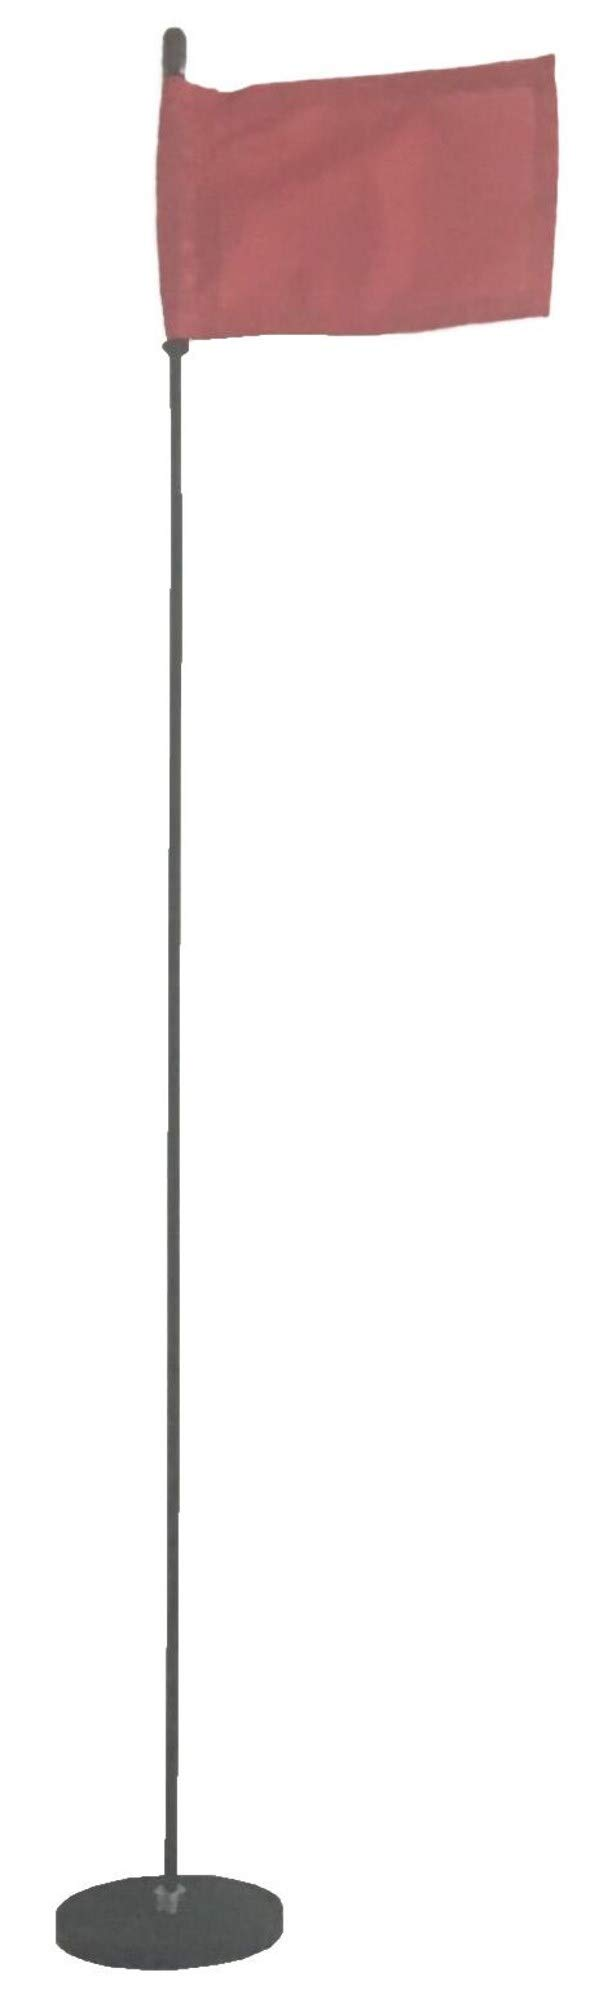 Magnetic Base Flag Holder 3 FT. Steel Pole - Hold Force 212 lbs. - 4 x 6 Red Flag